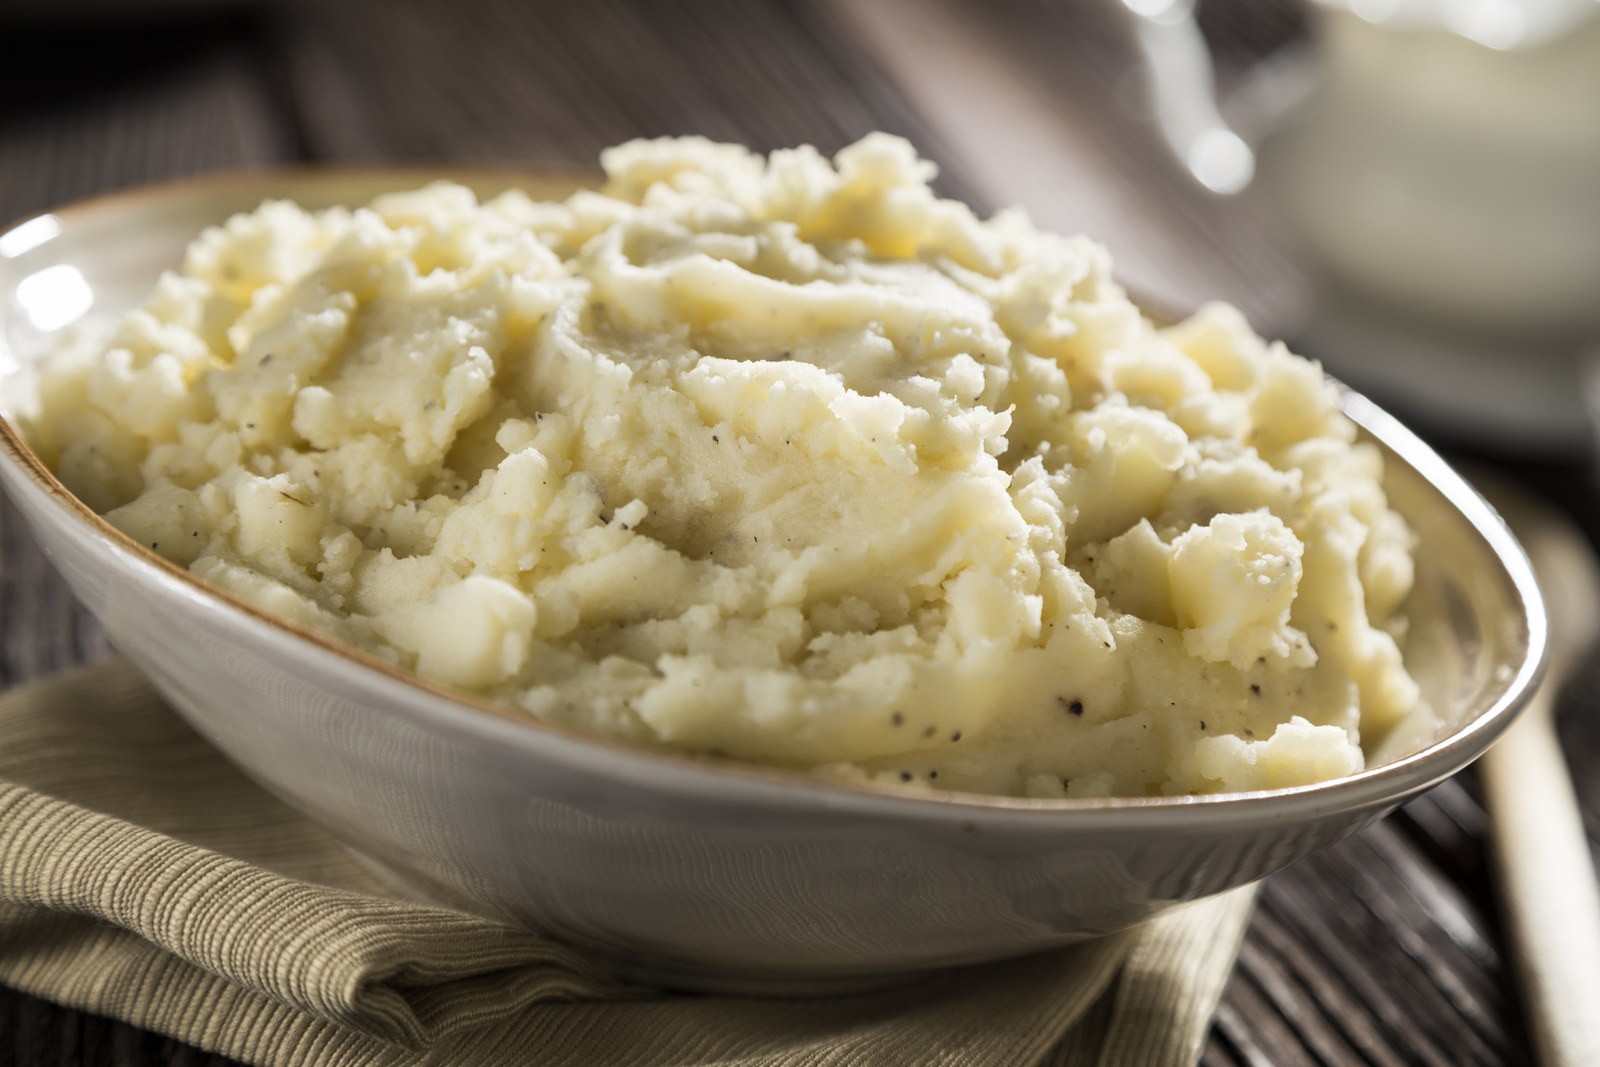 Apparently We've All Just Been Cooking Mashed Potatoes Wrong